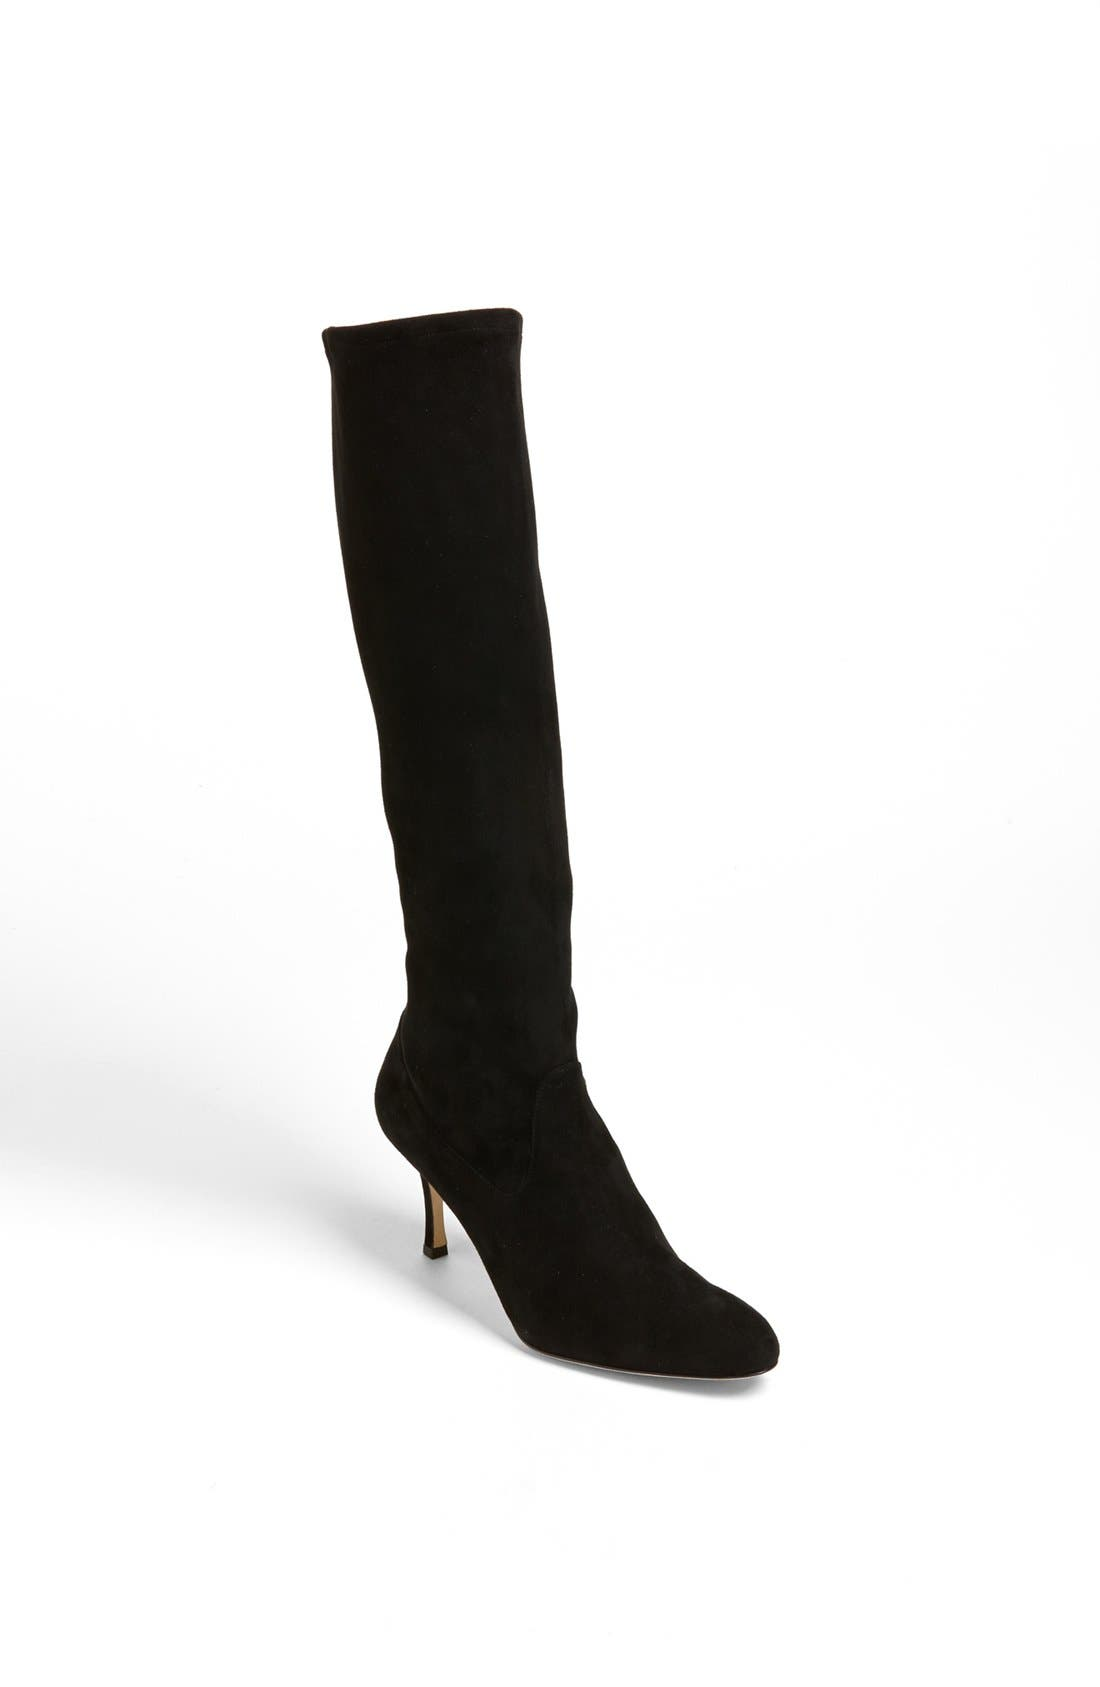 Alternate Image 1 Selected - Manolo Blahnik 'Pascalare' Boot